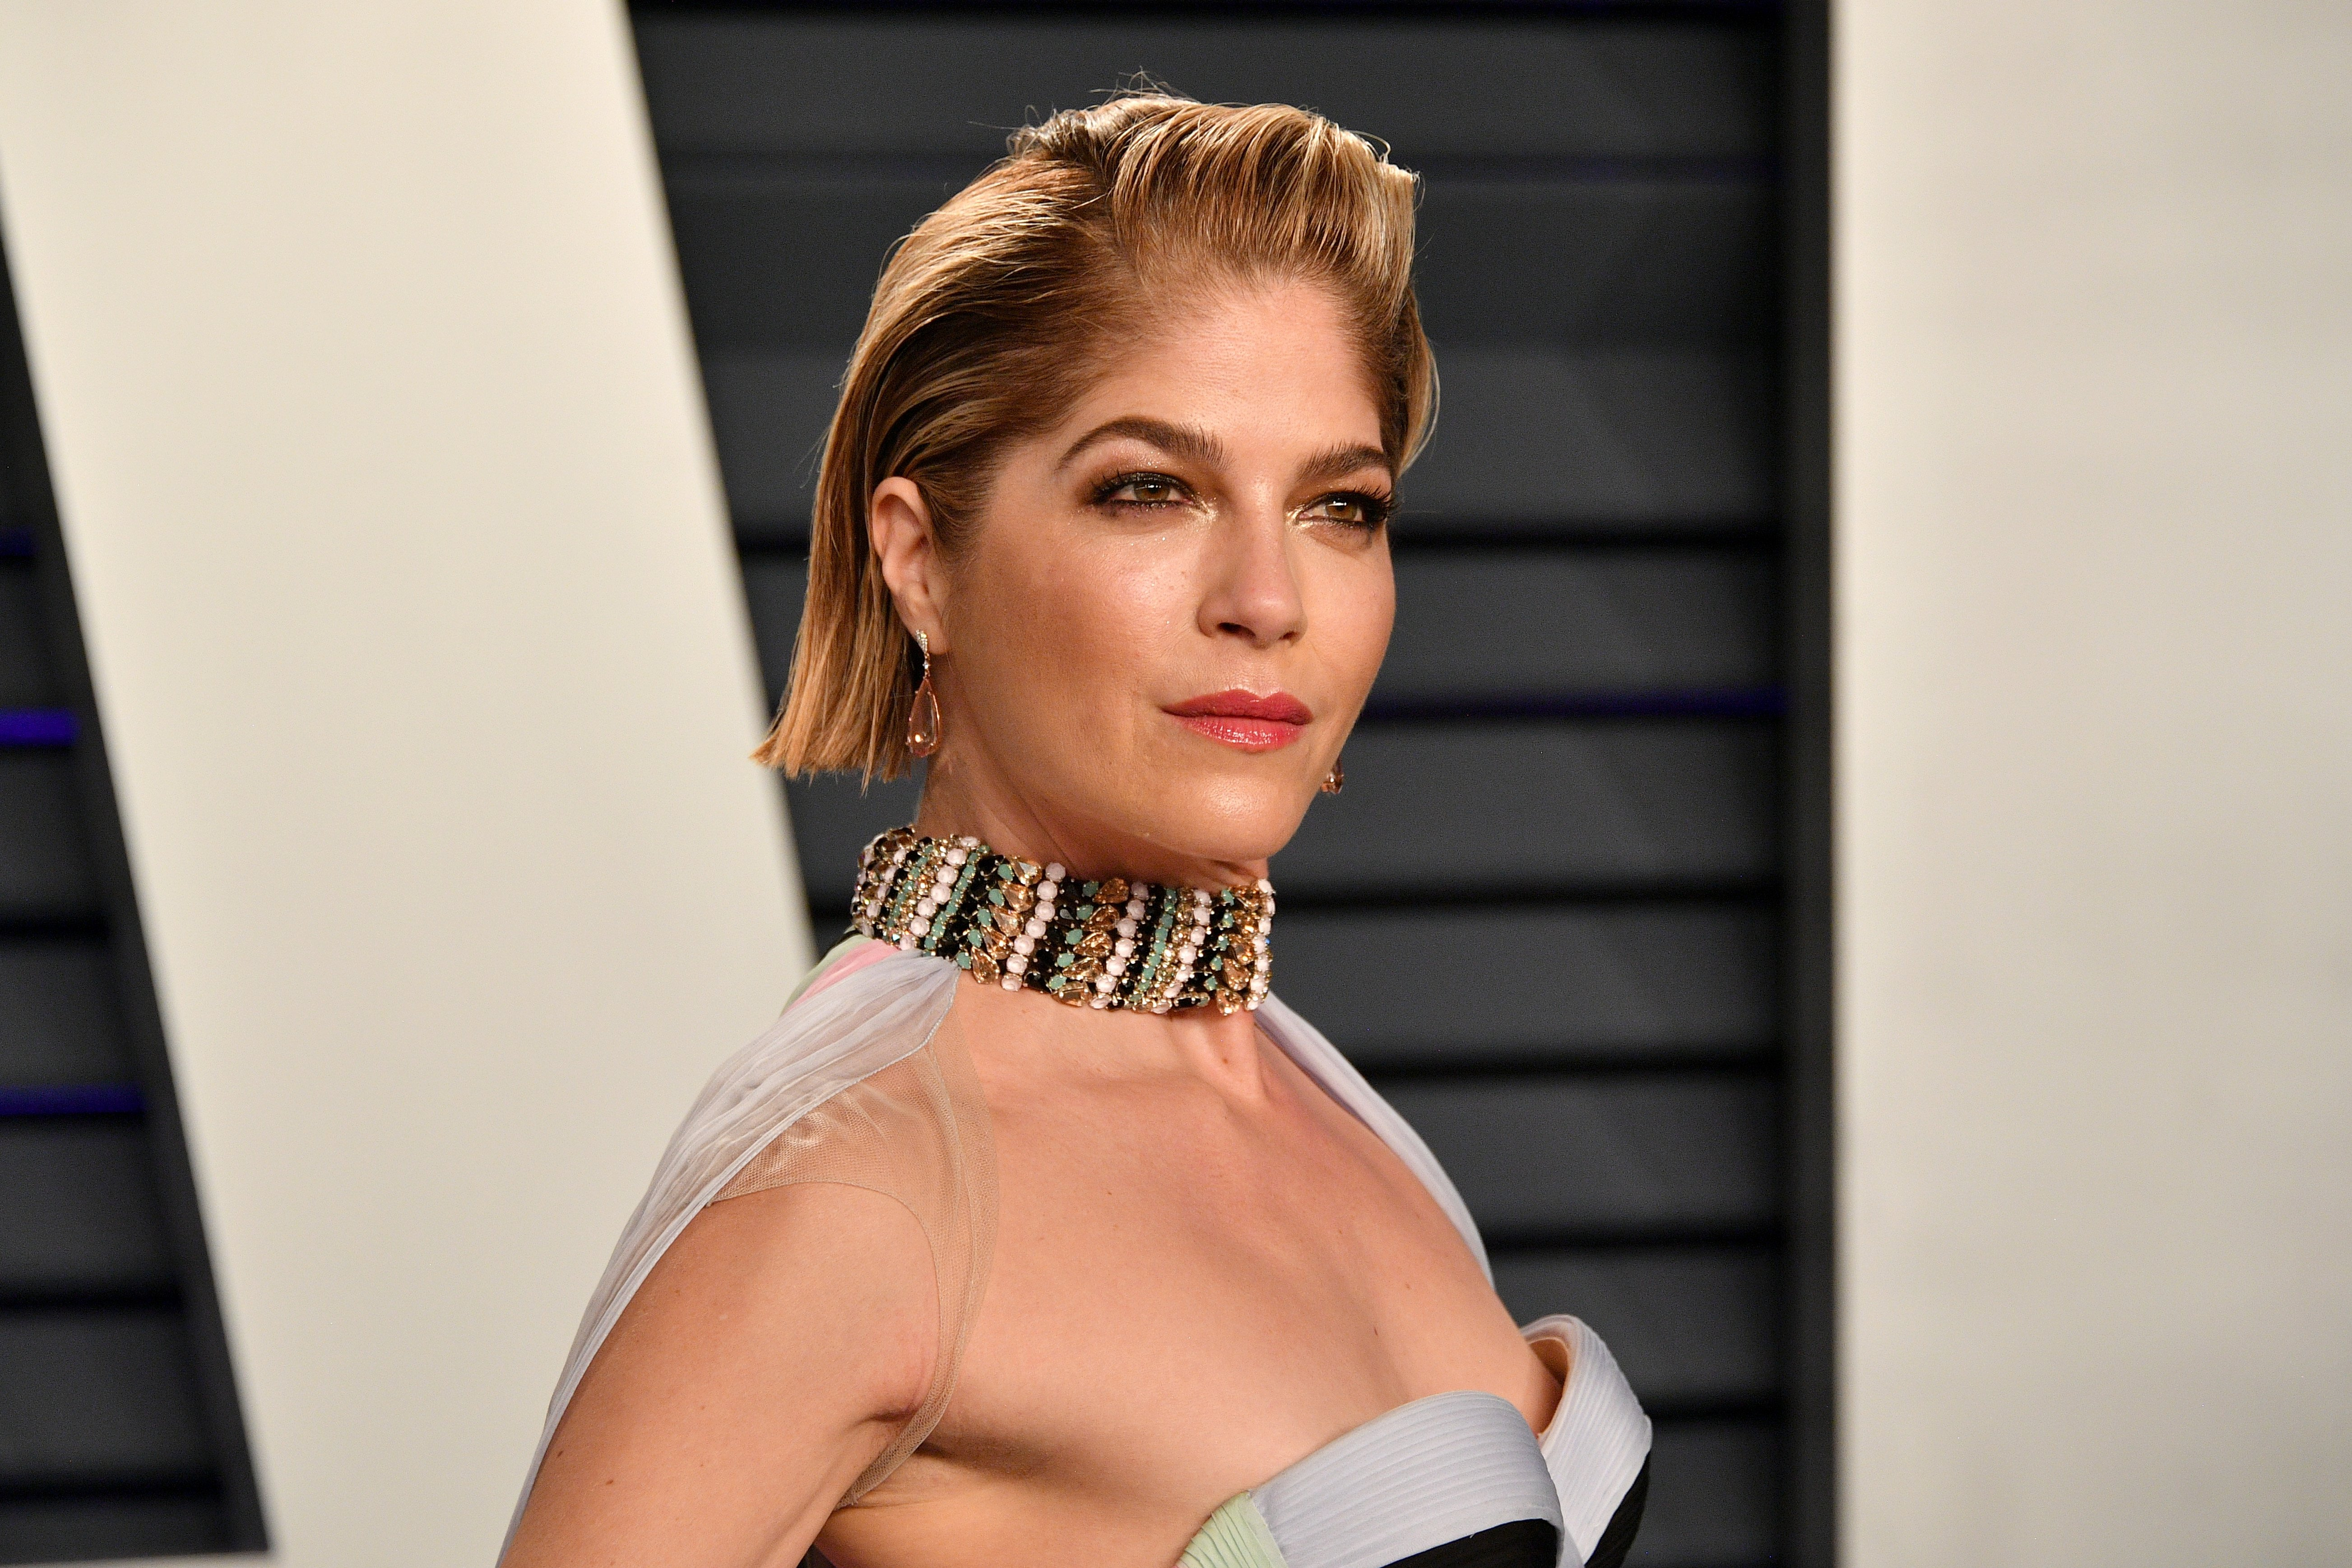 Selma Blair attends the Vanity Fair Oscar Party in Beverly Hills, California on February 24, 2019 | Photo: Getty Images